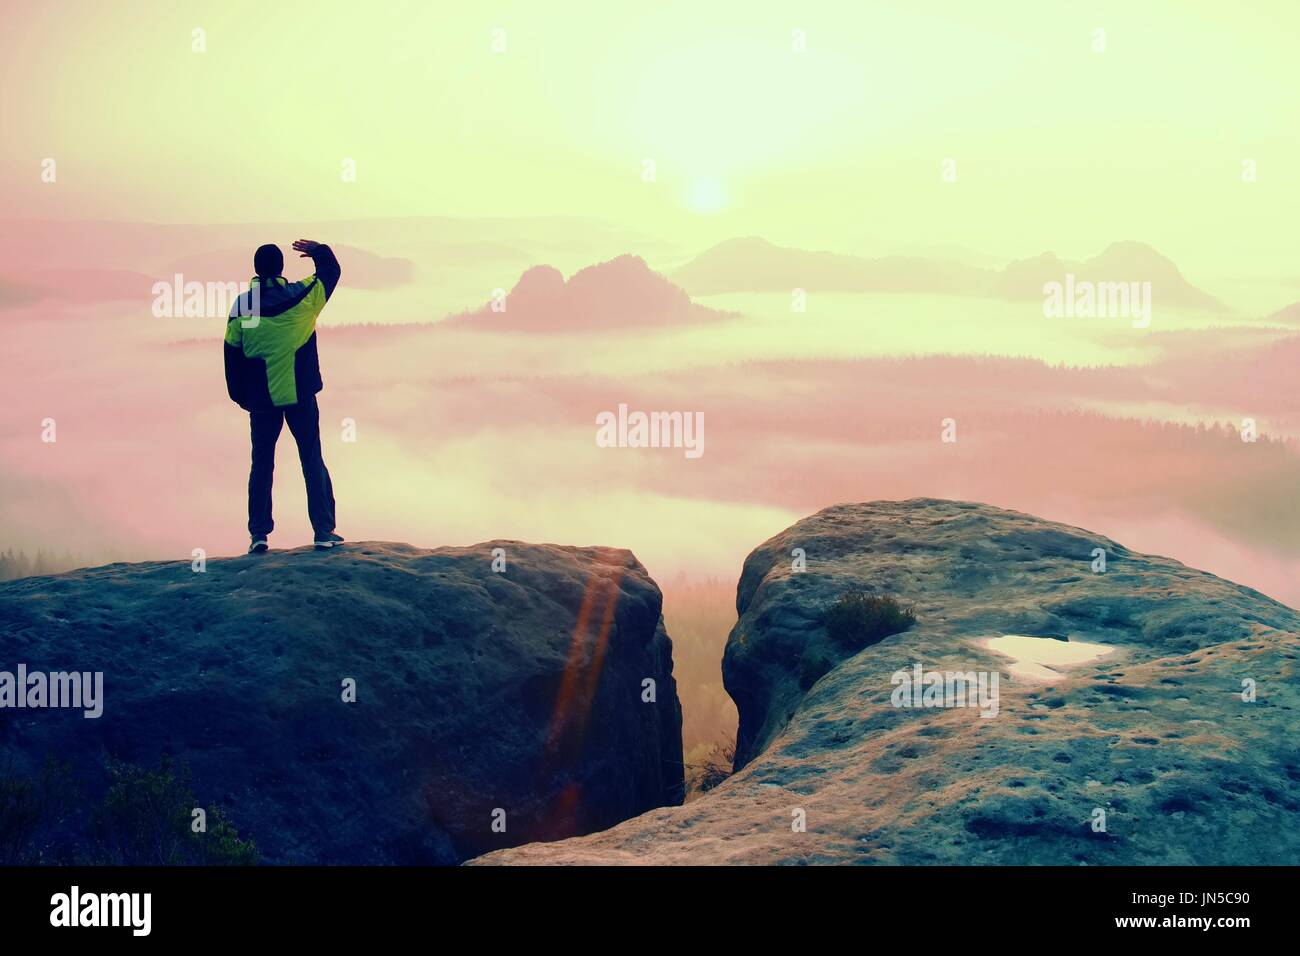 Moment of loneliness. Man on the rock empires  and watch over the misty and foggy morning valley. - Stock Image